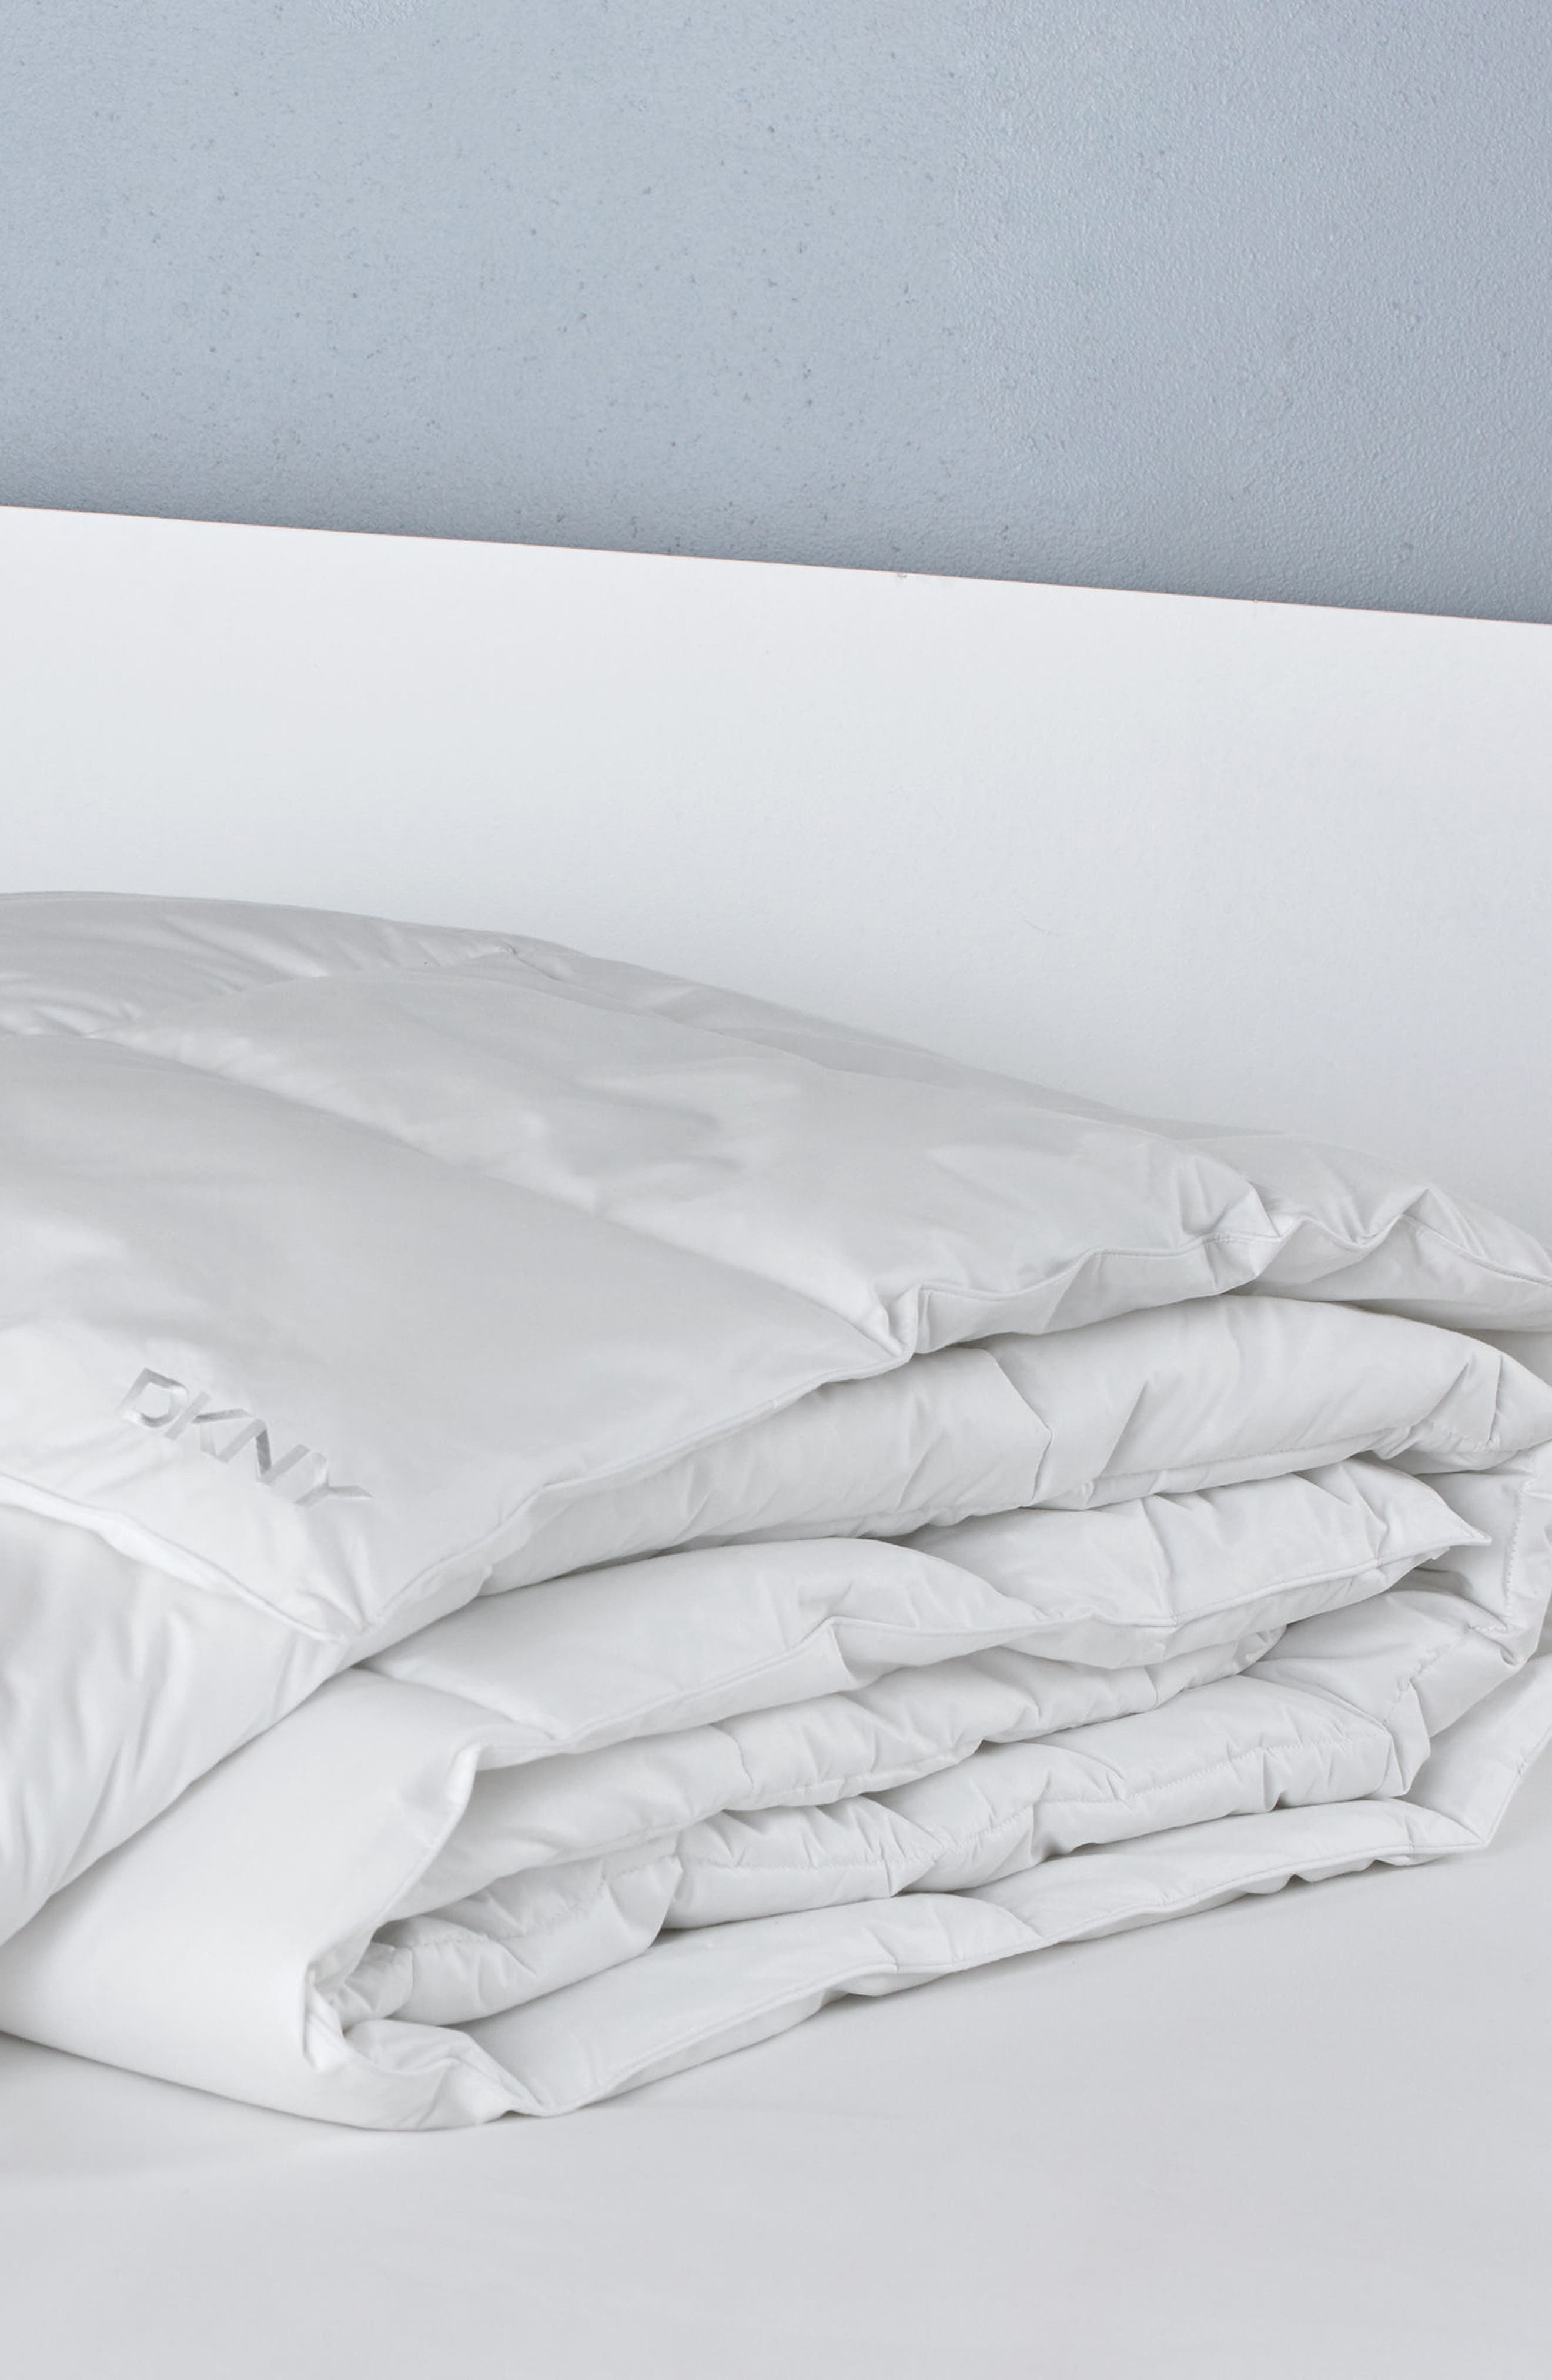 DKNY Down Alternative Comforter